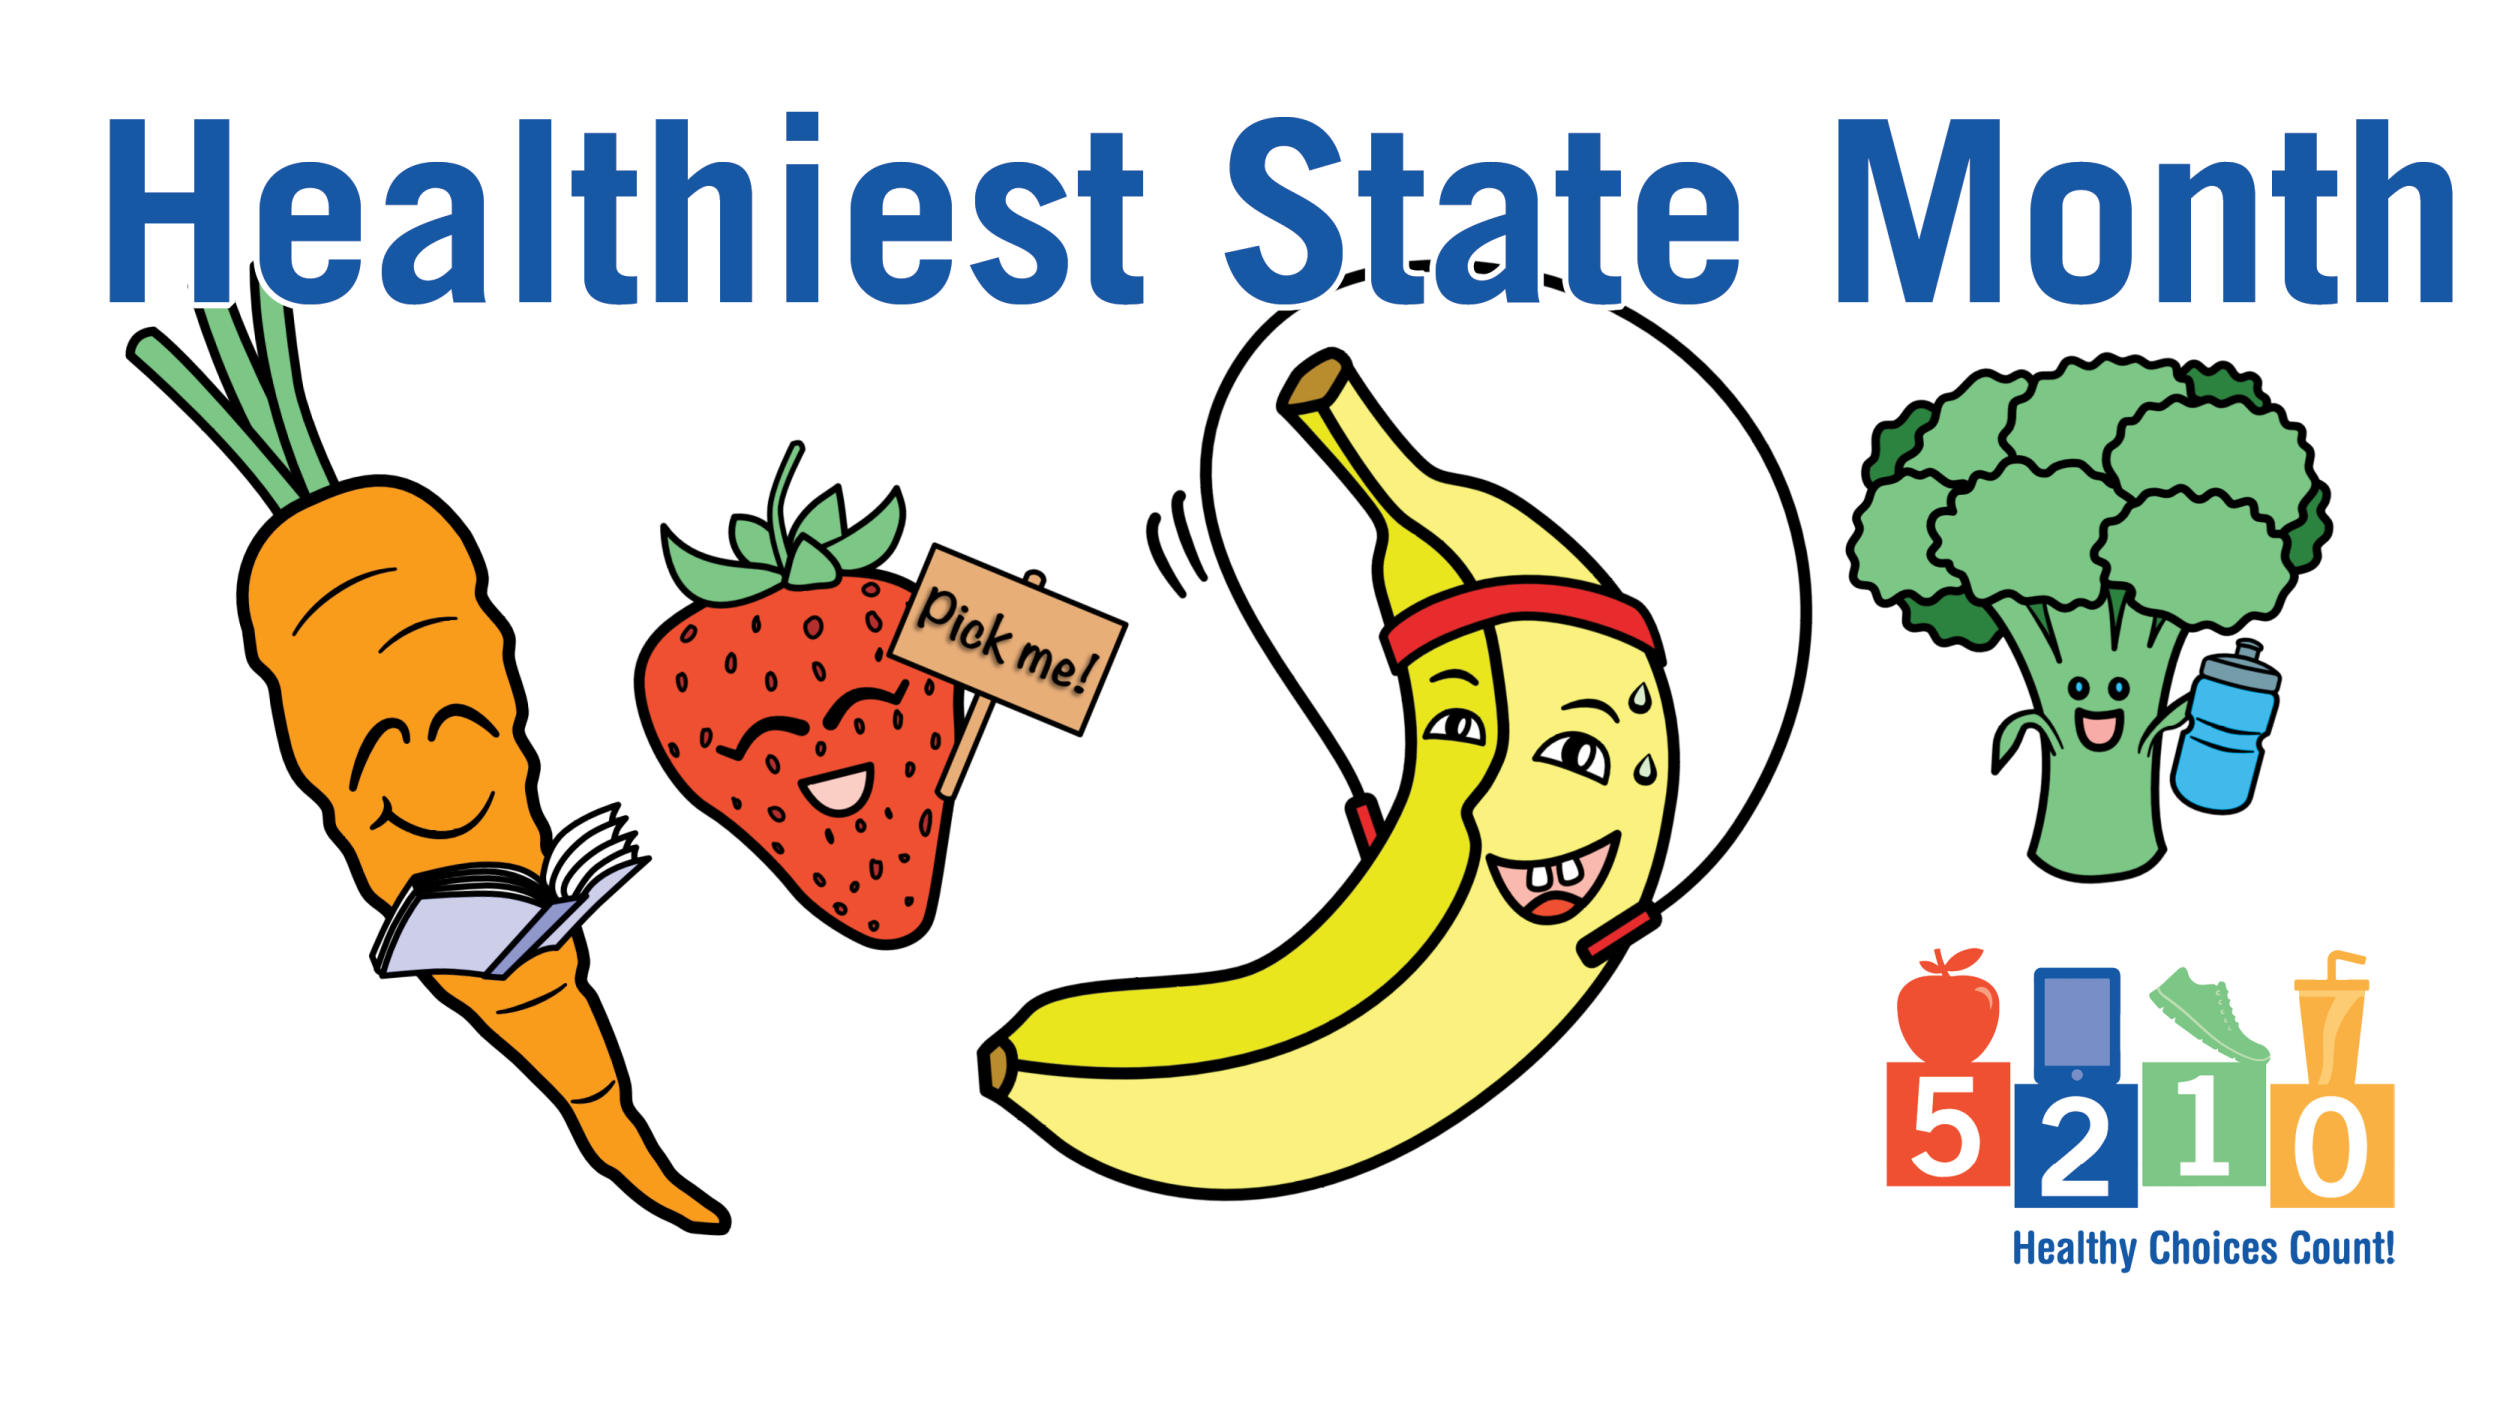 Healthiest State Month